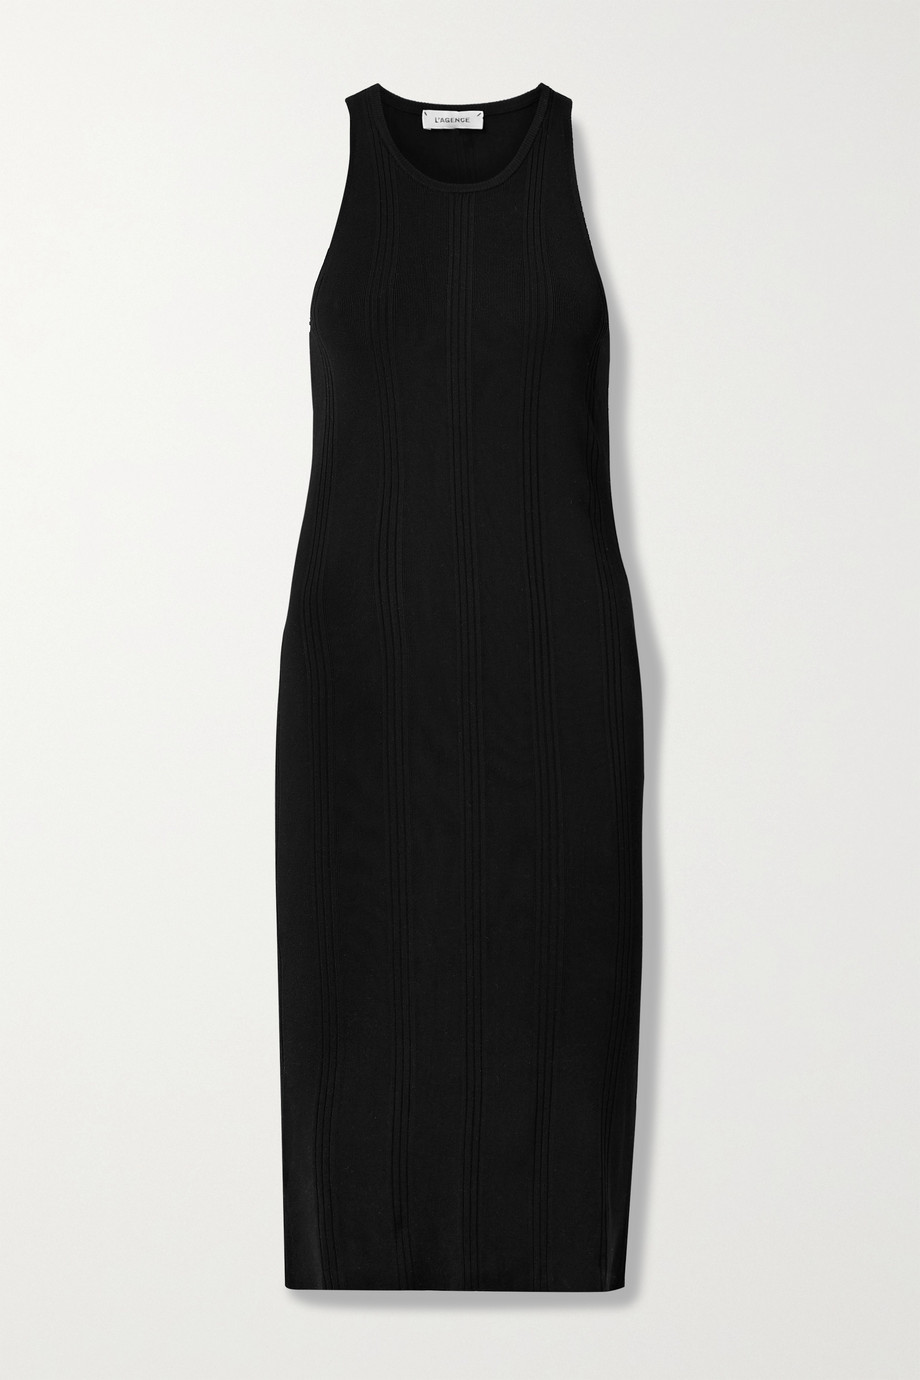 L'AGENCE Shelby ribbed-knit midi dress